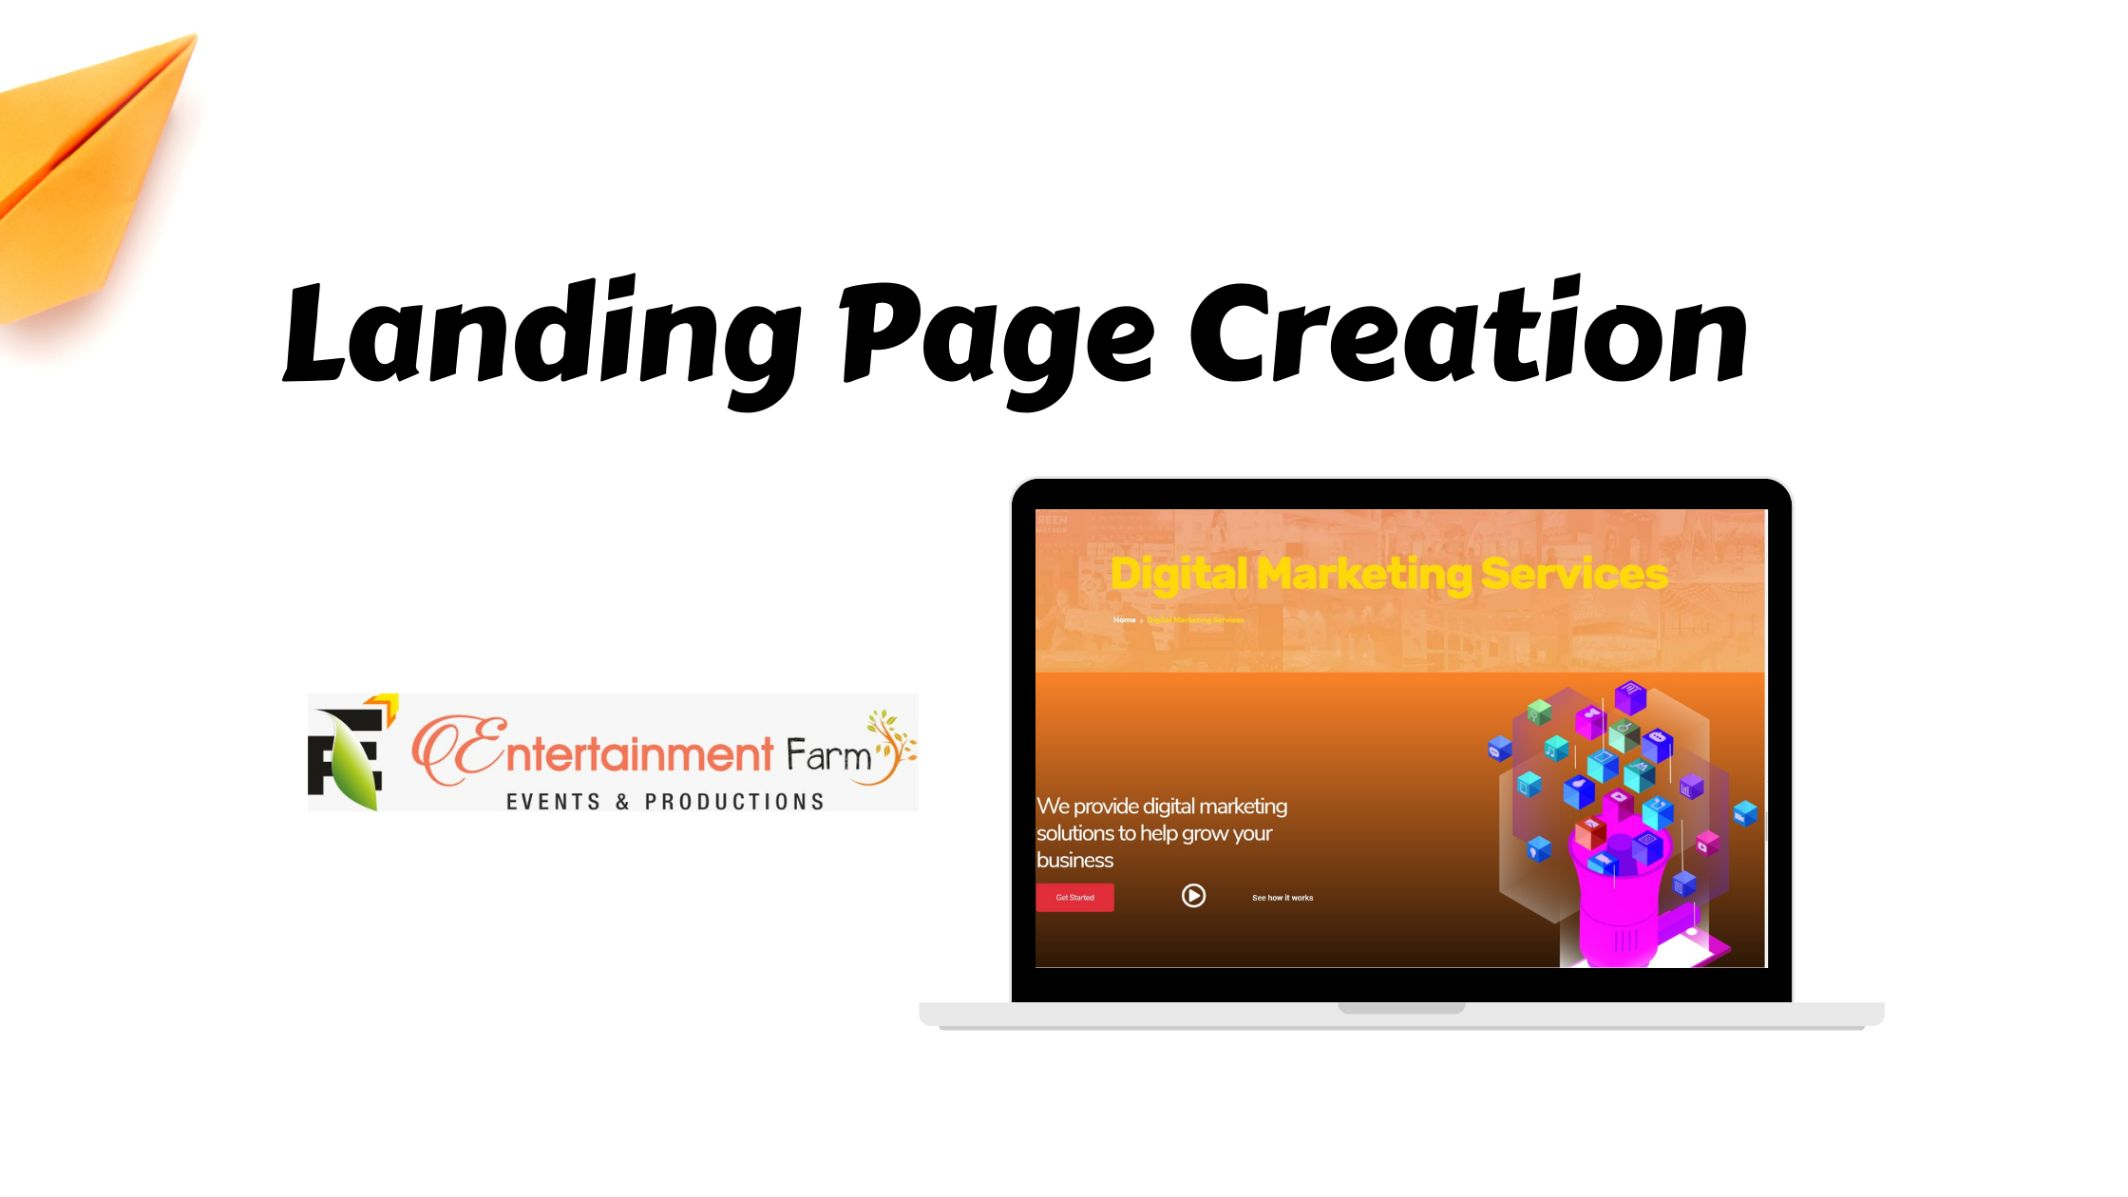 Landing Page Creation for Entertainment Firm